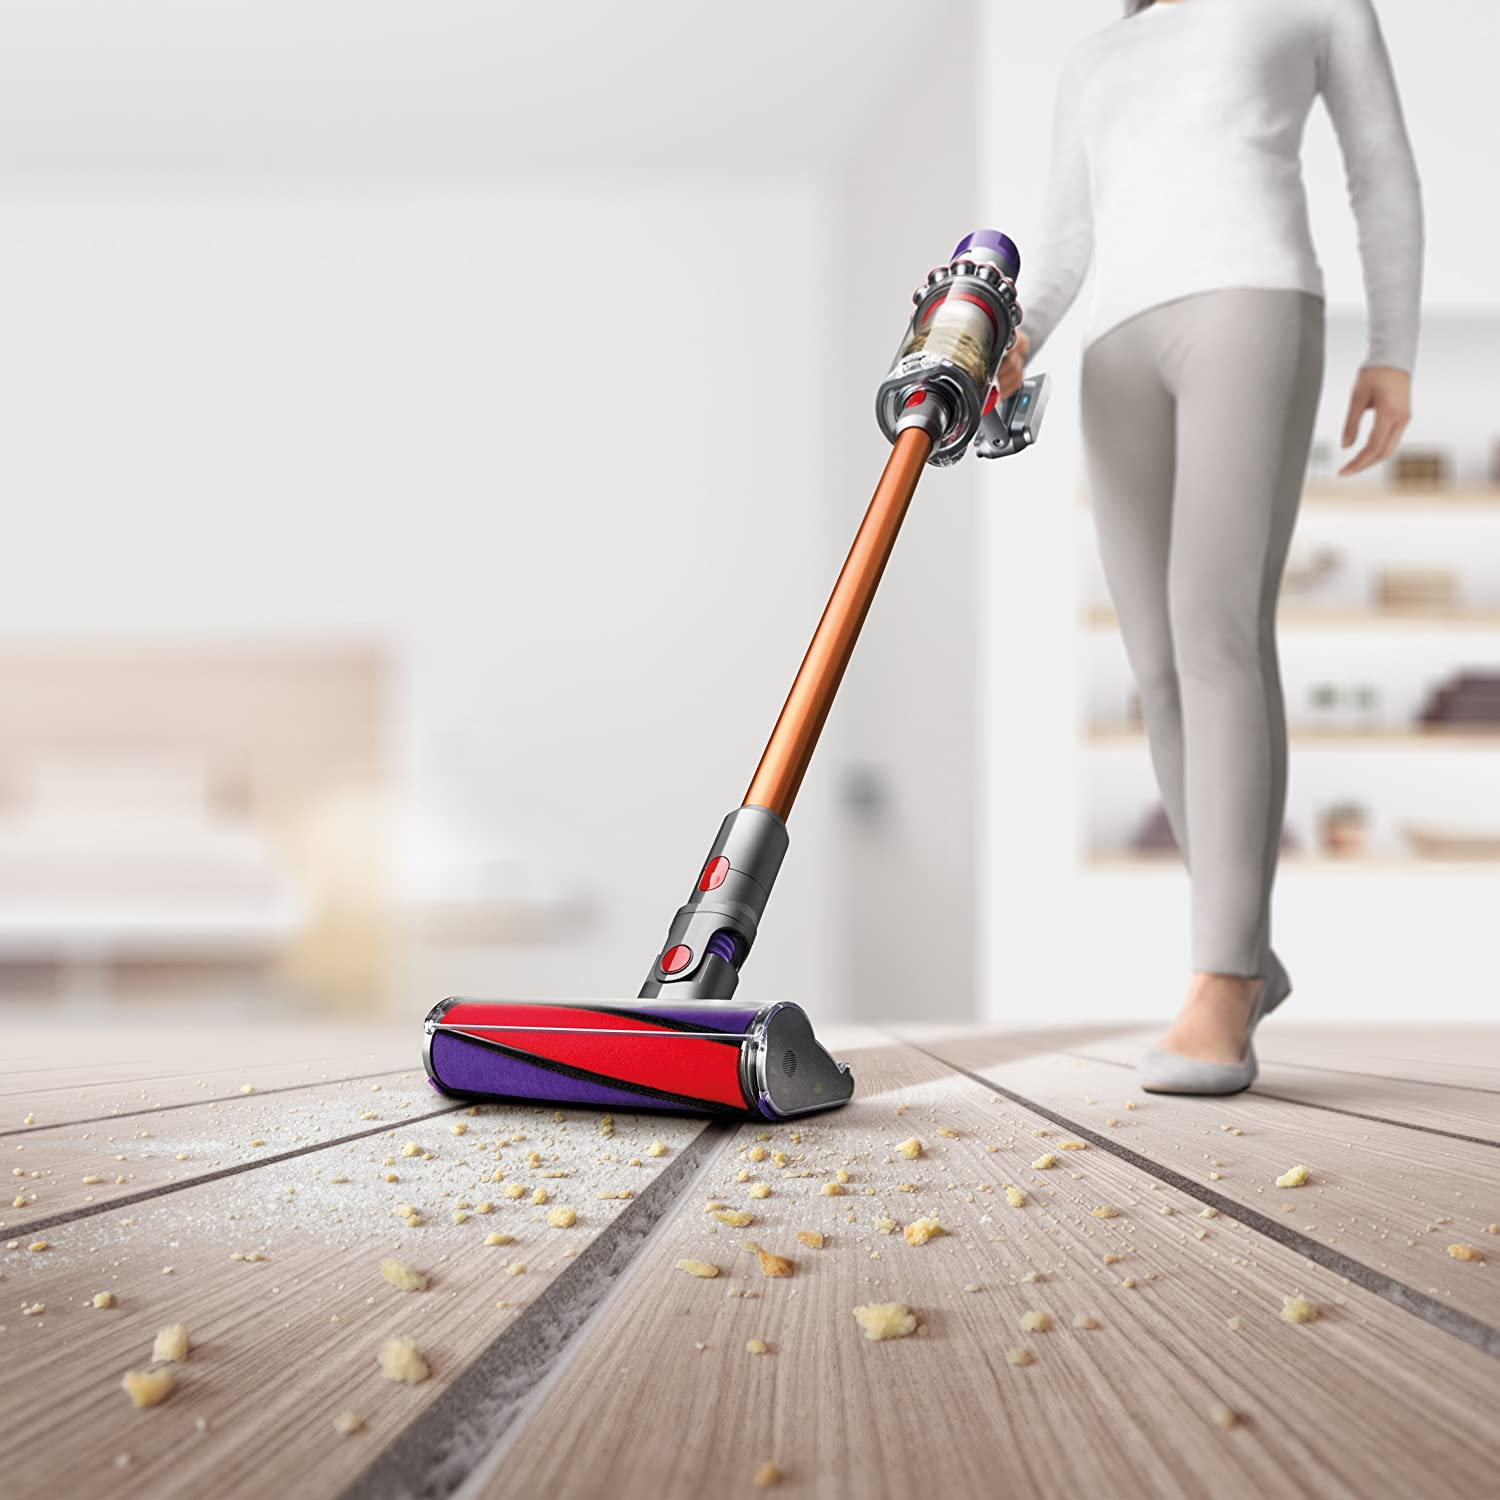 Dyson V10 Absolute Pro Cord-Free Vacuum (Copper) : Amazon.in: Home & Kitchen